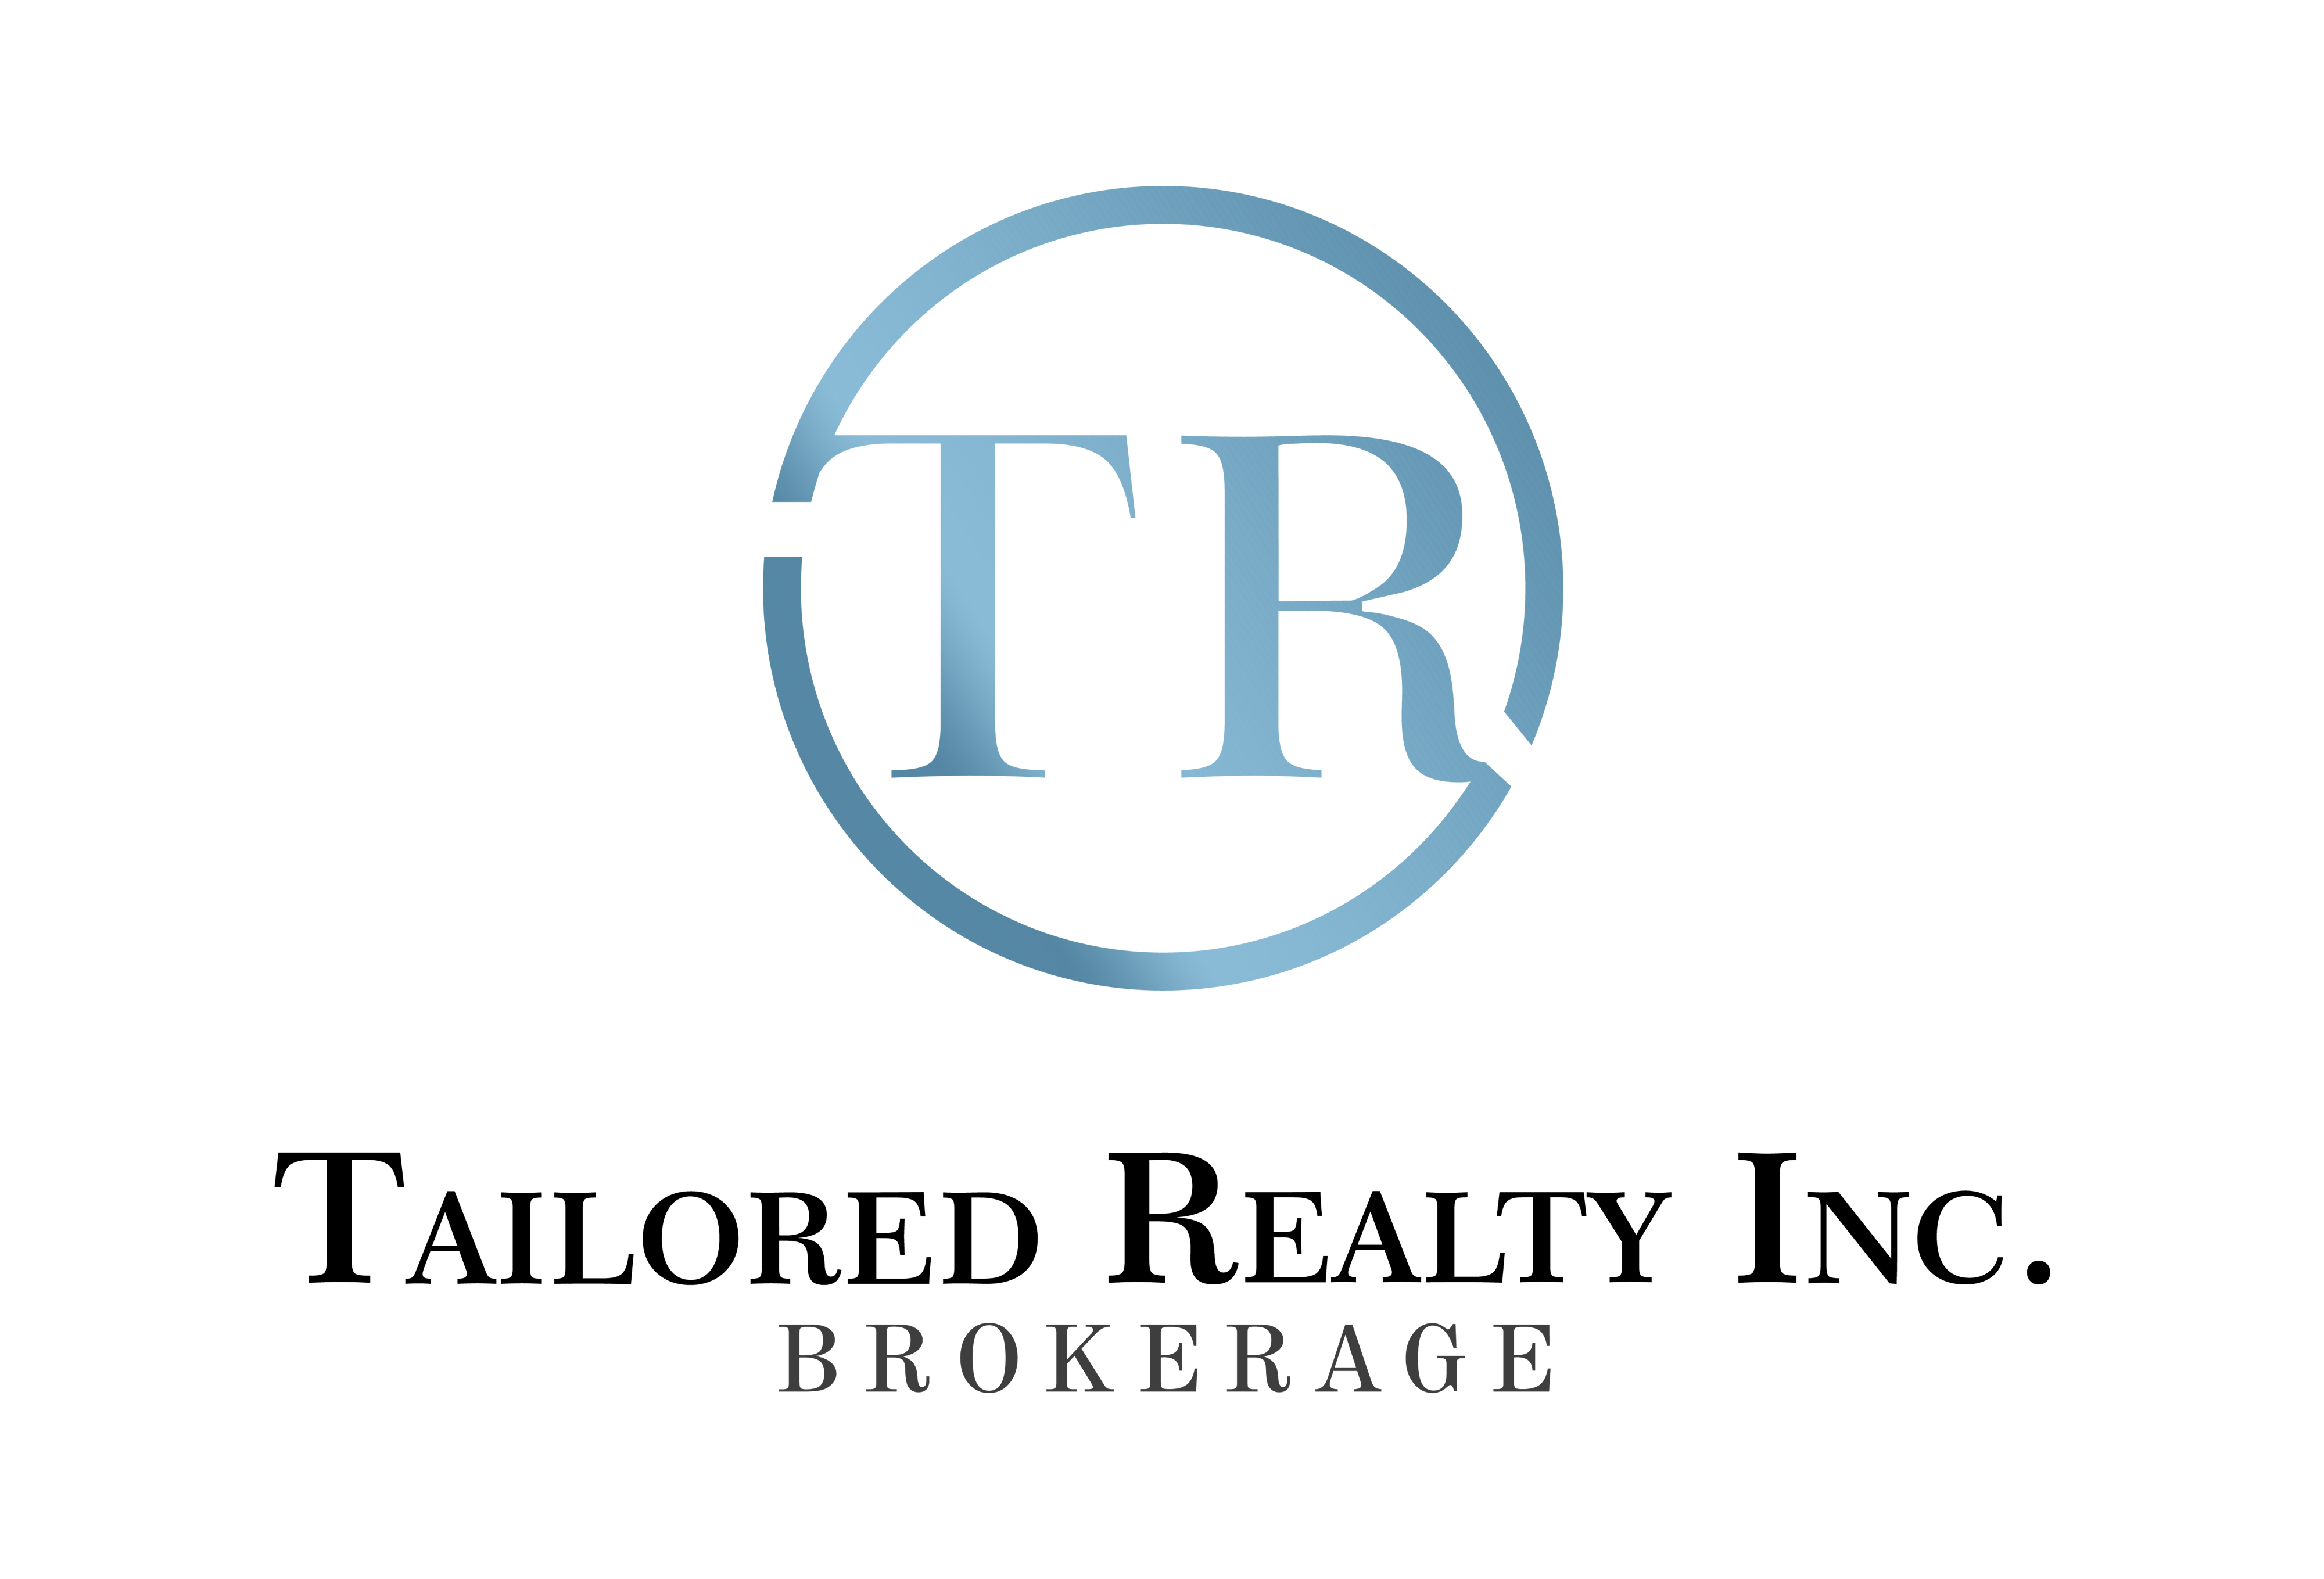 Tailored Realty Inc., Brokerage